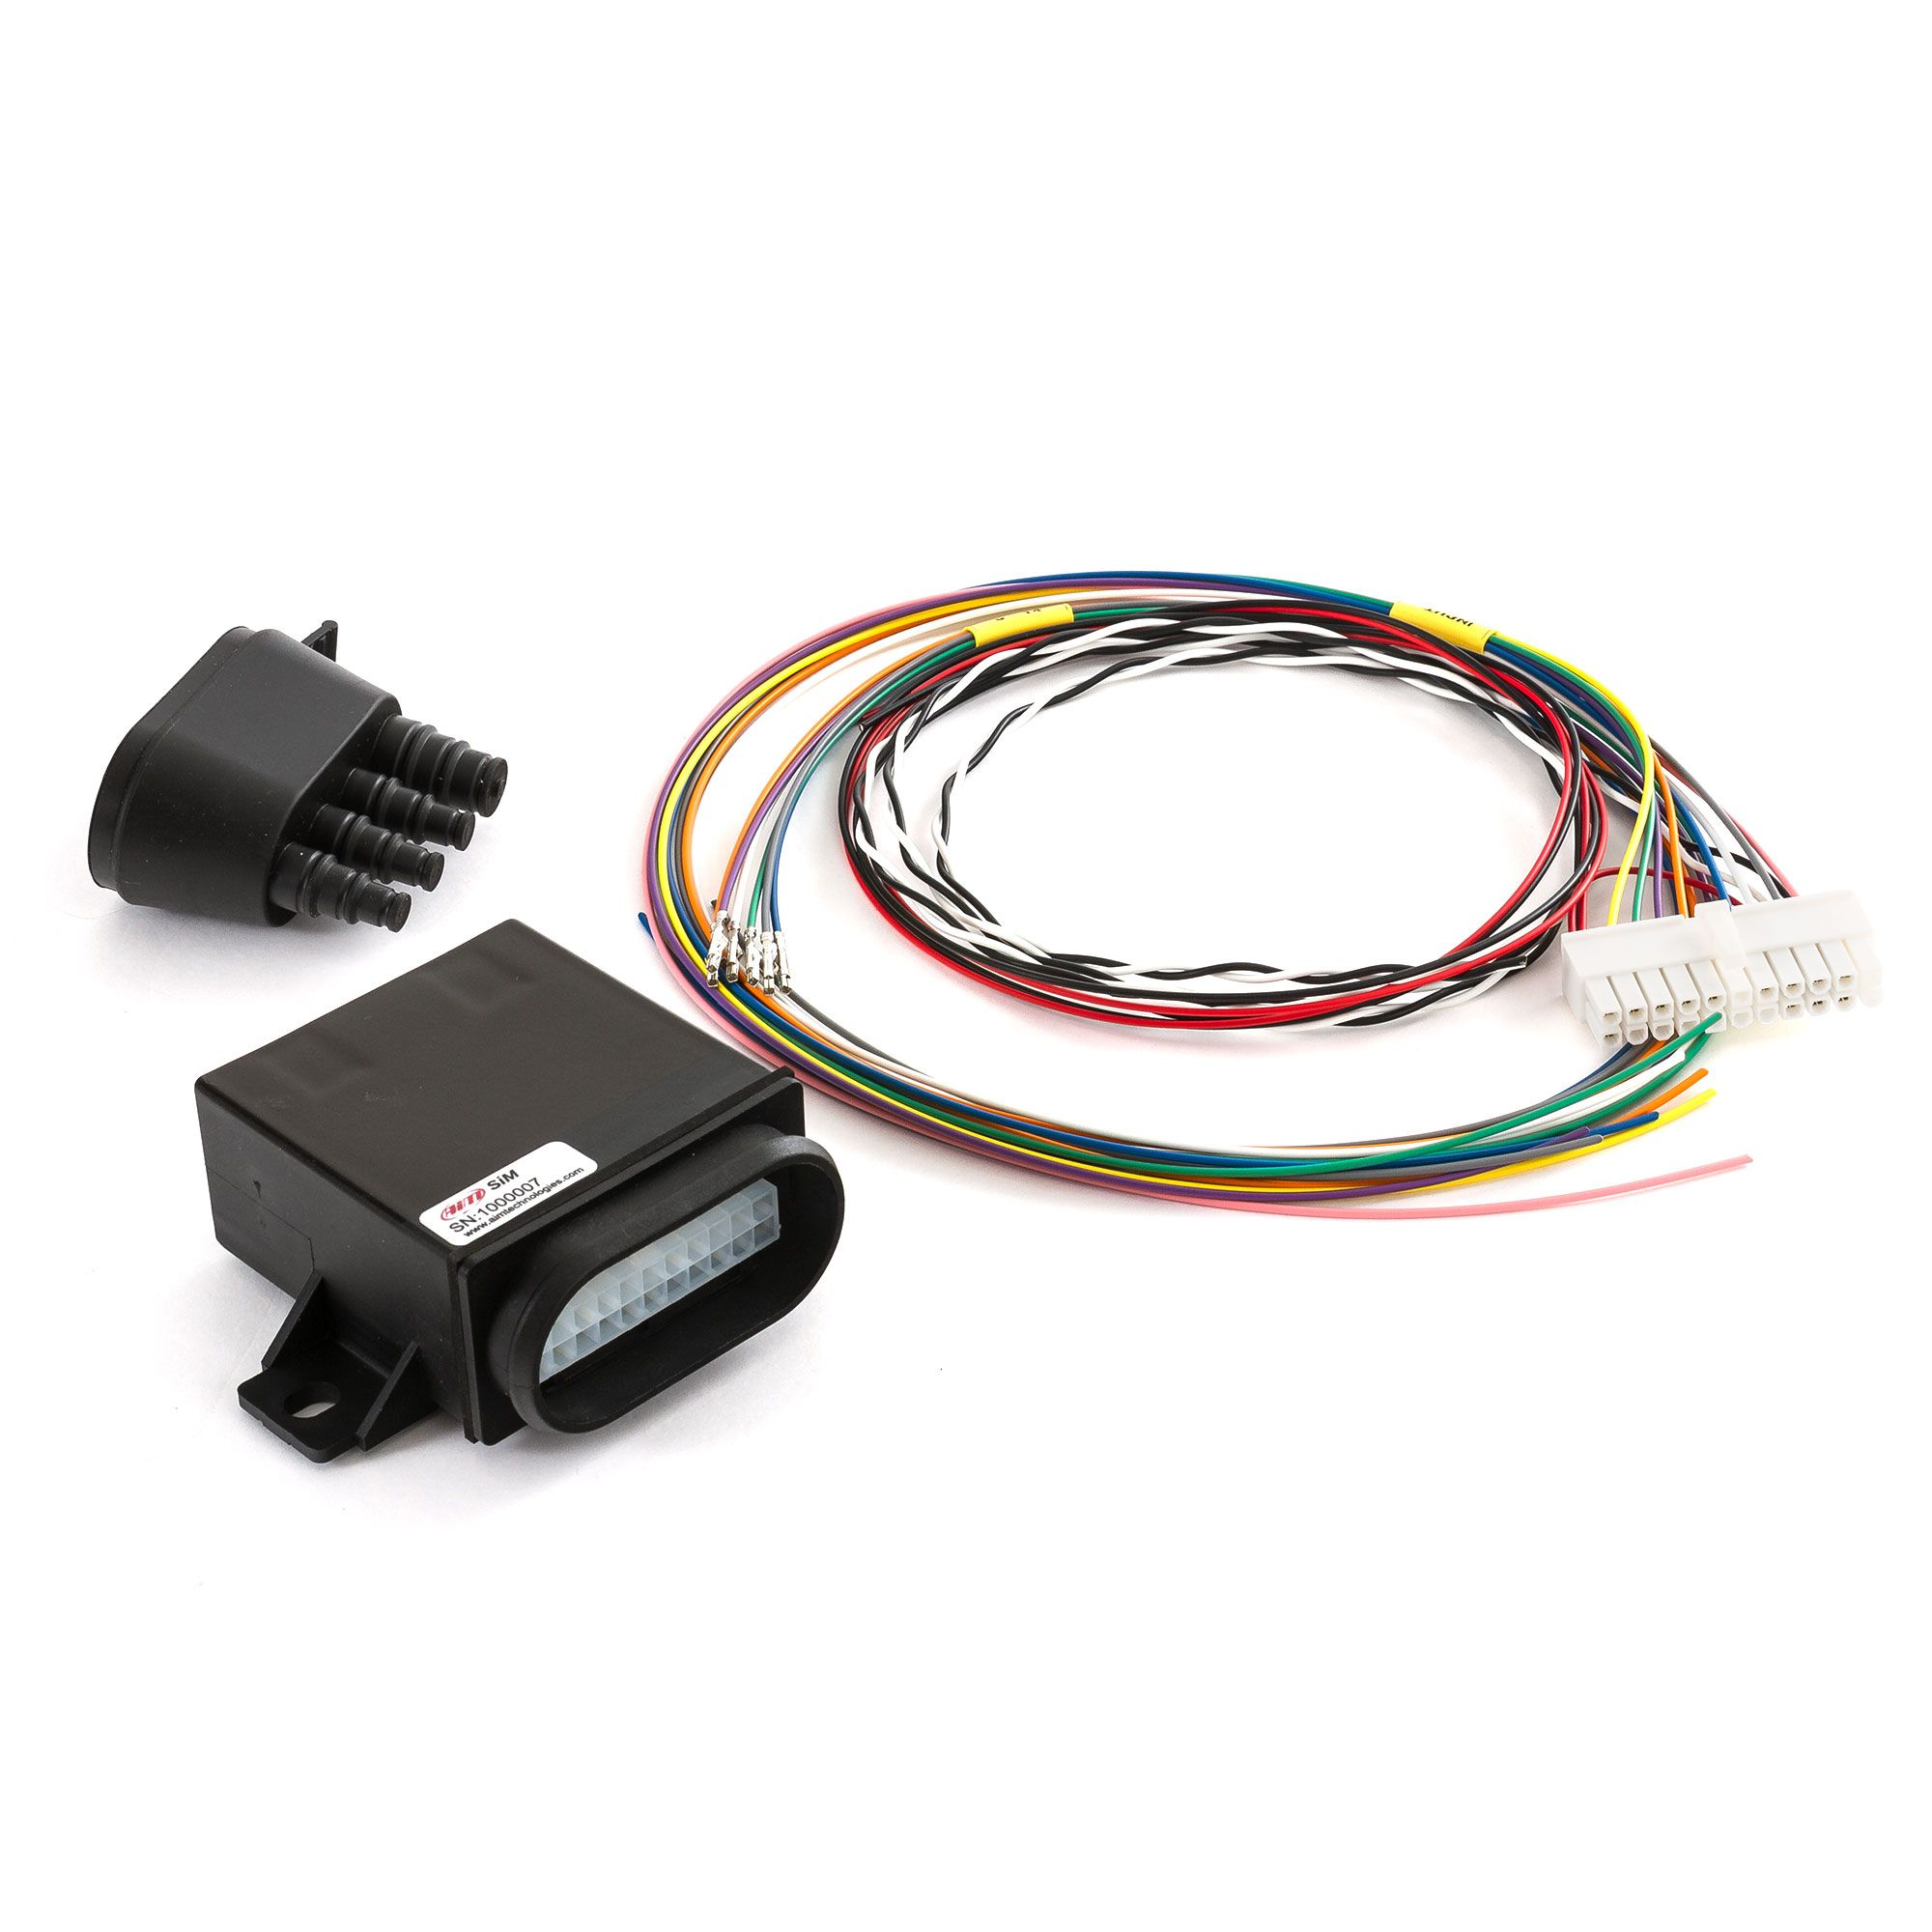 Details about AIM Motorsport Race / Rally Voltage Switch Input Module For  Dash Logger Display